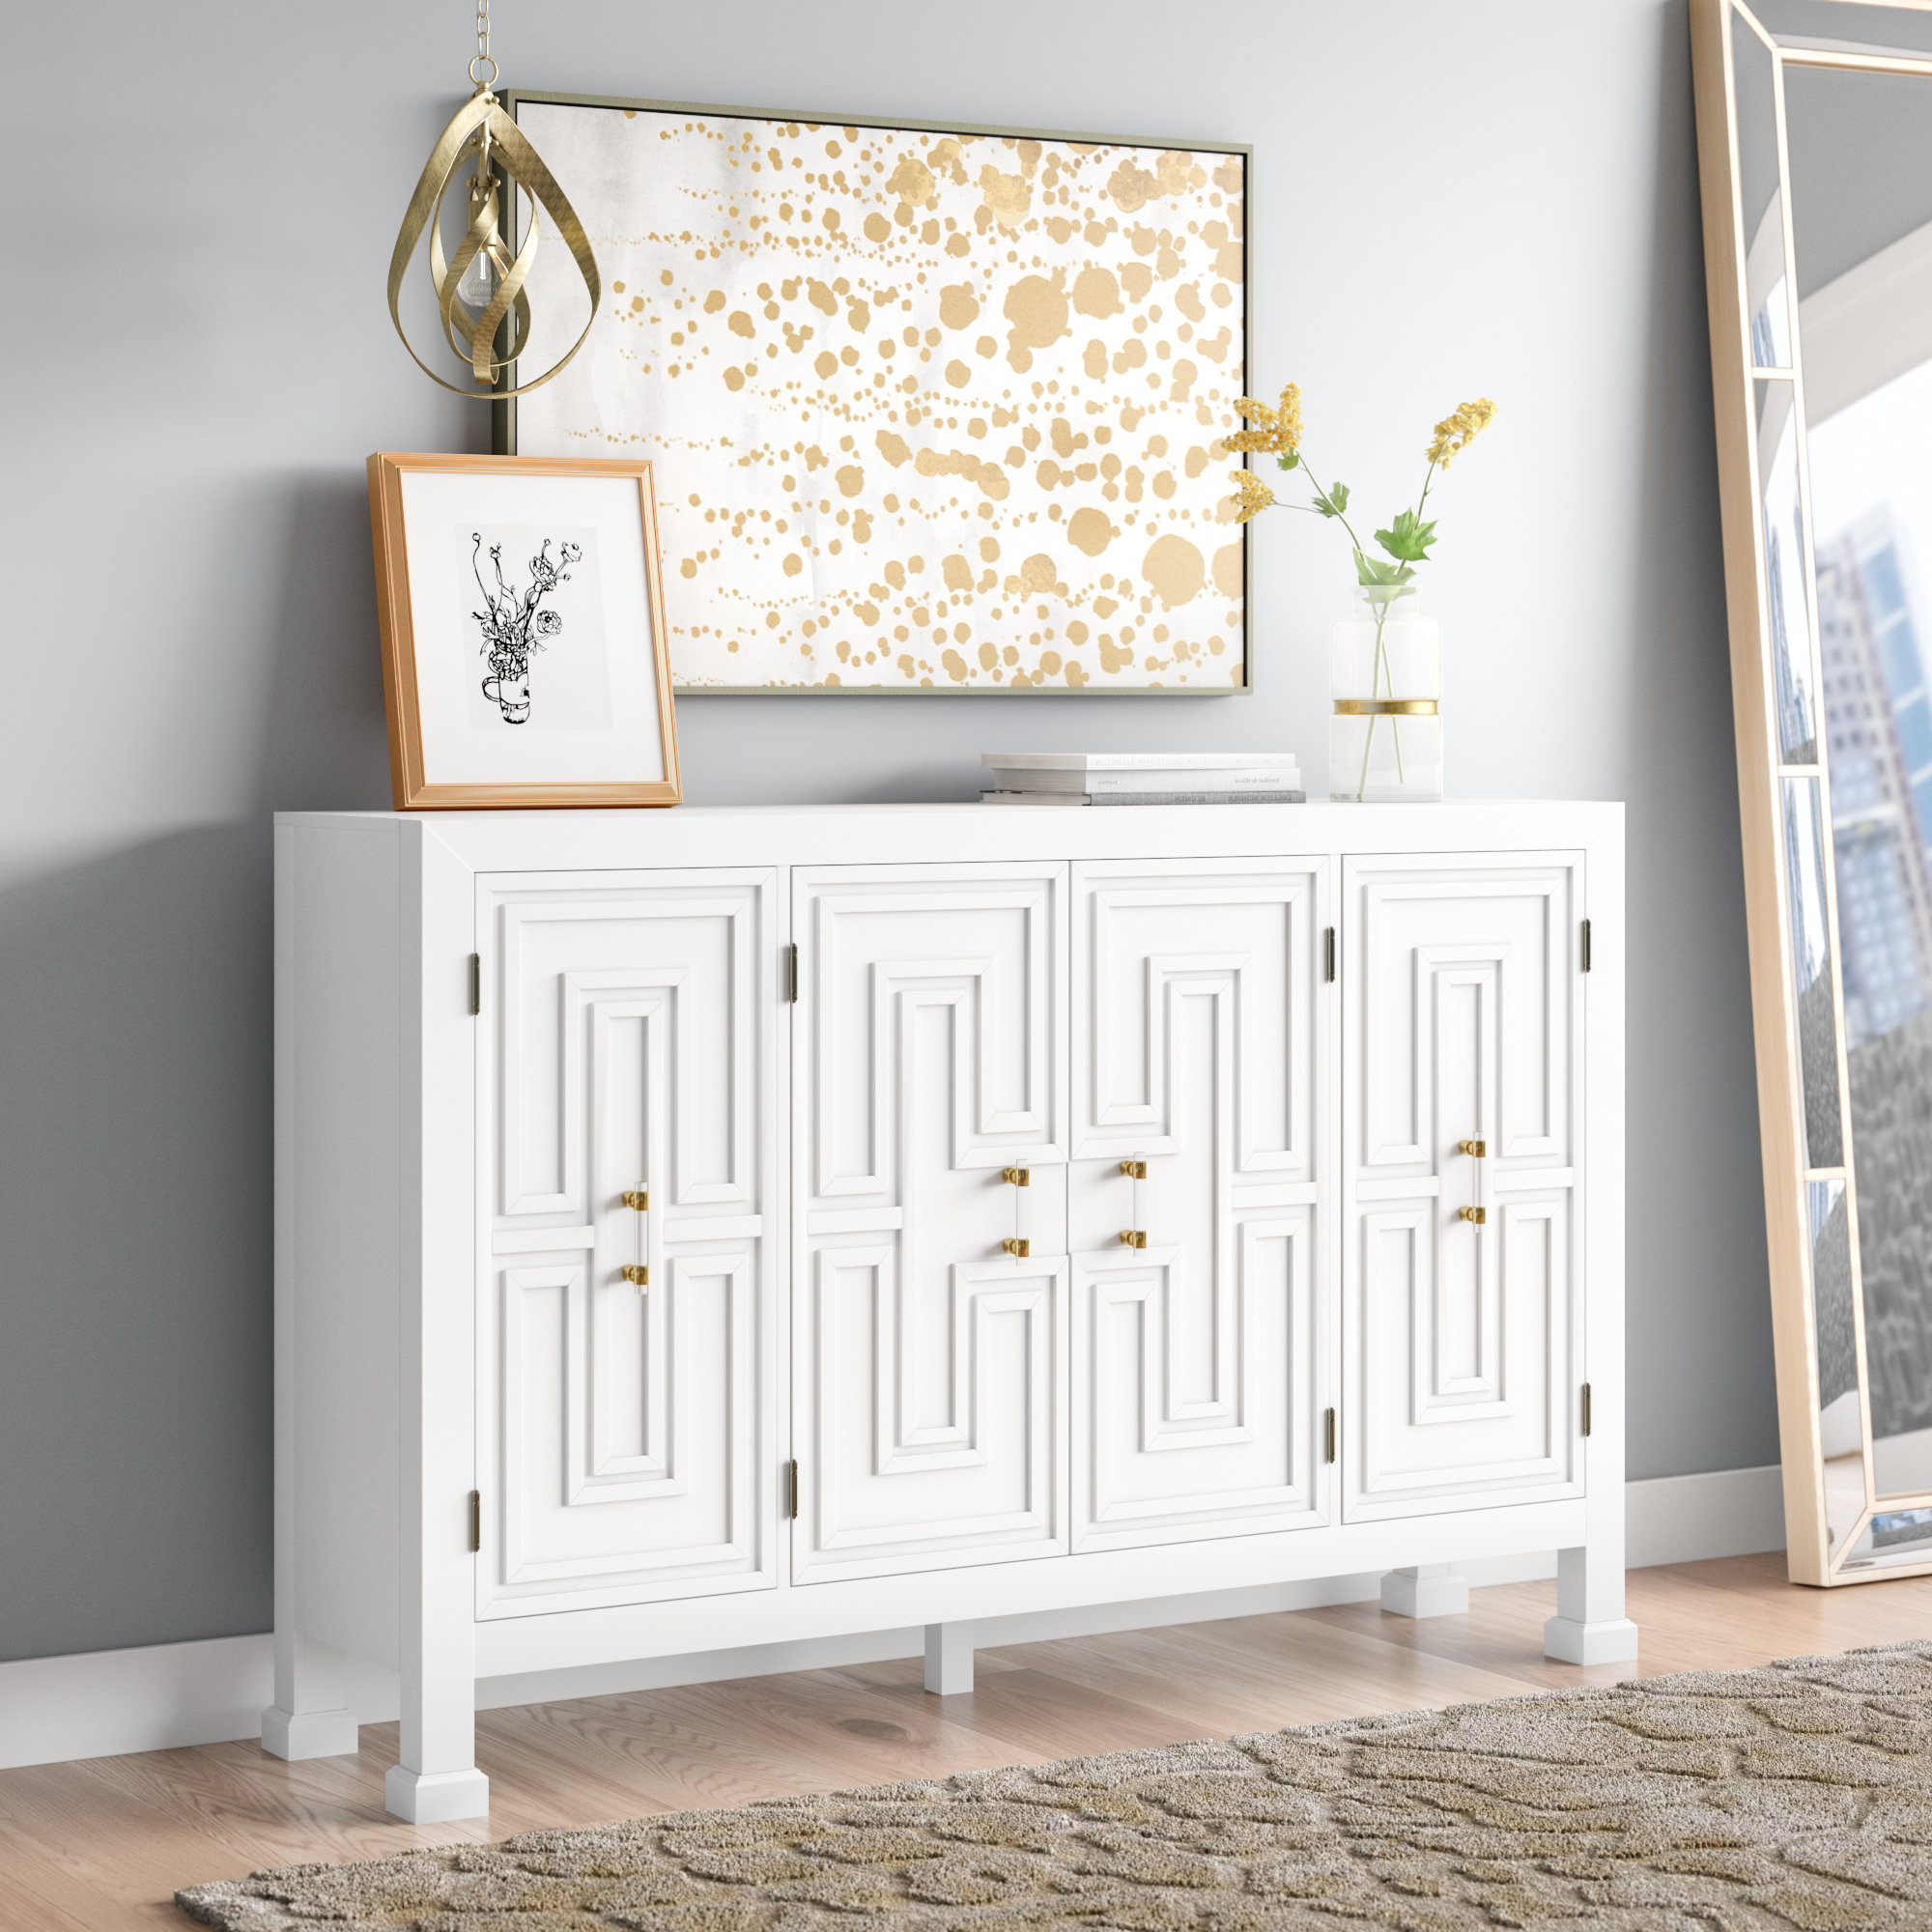 Lainey Credenzas Within Most Popular Lainey Credenza (View 7 of 20)